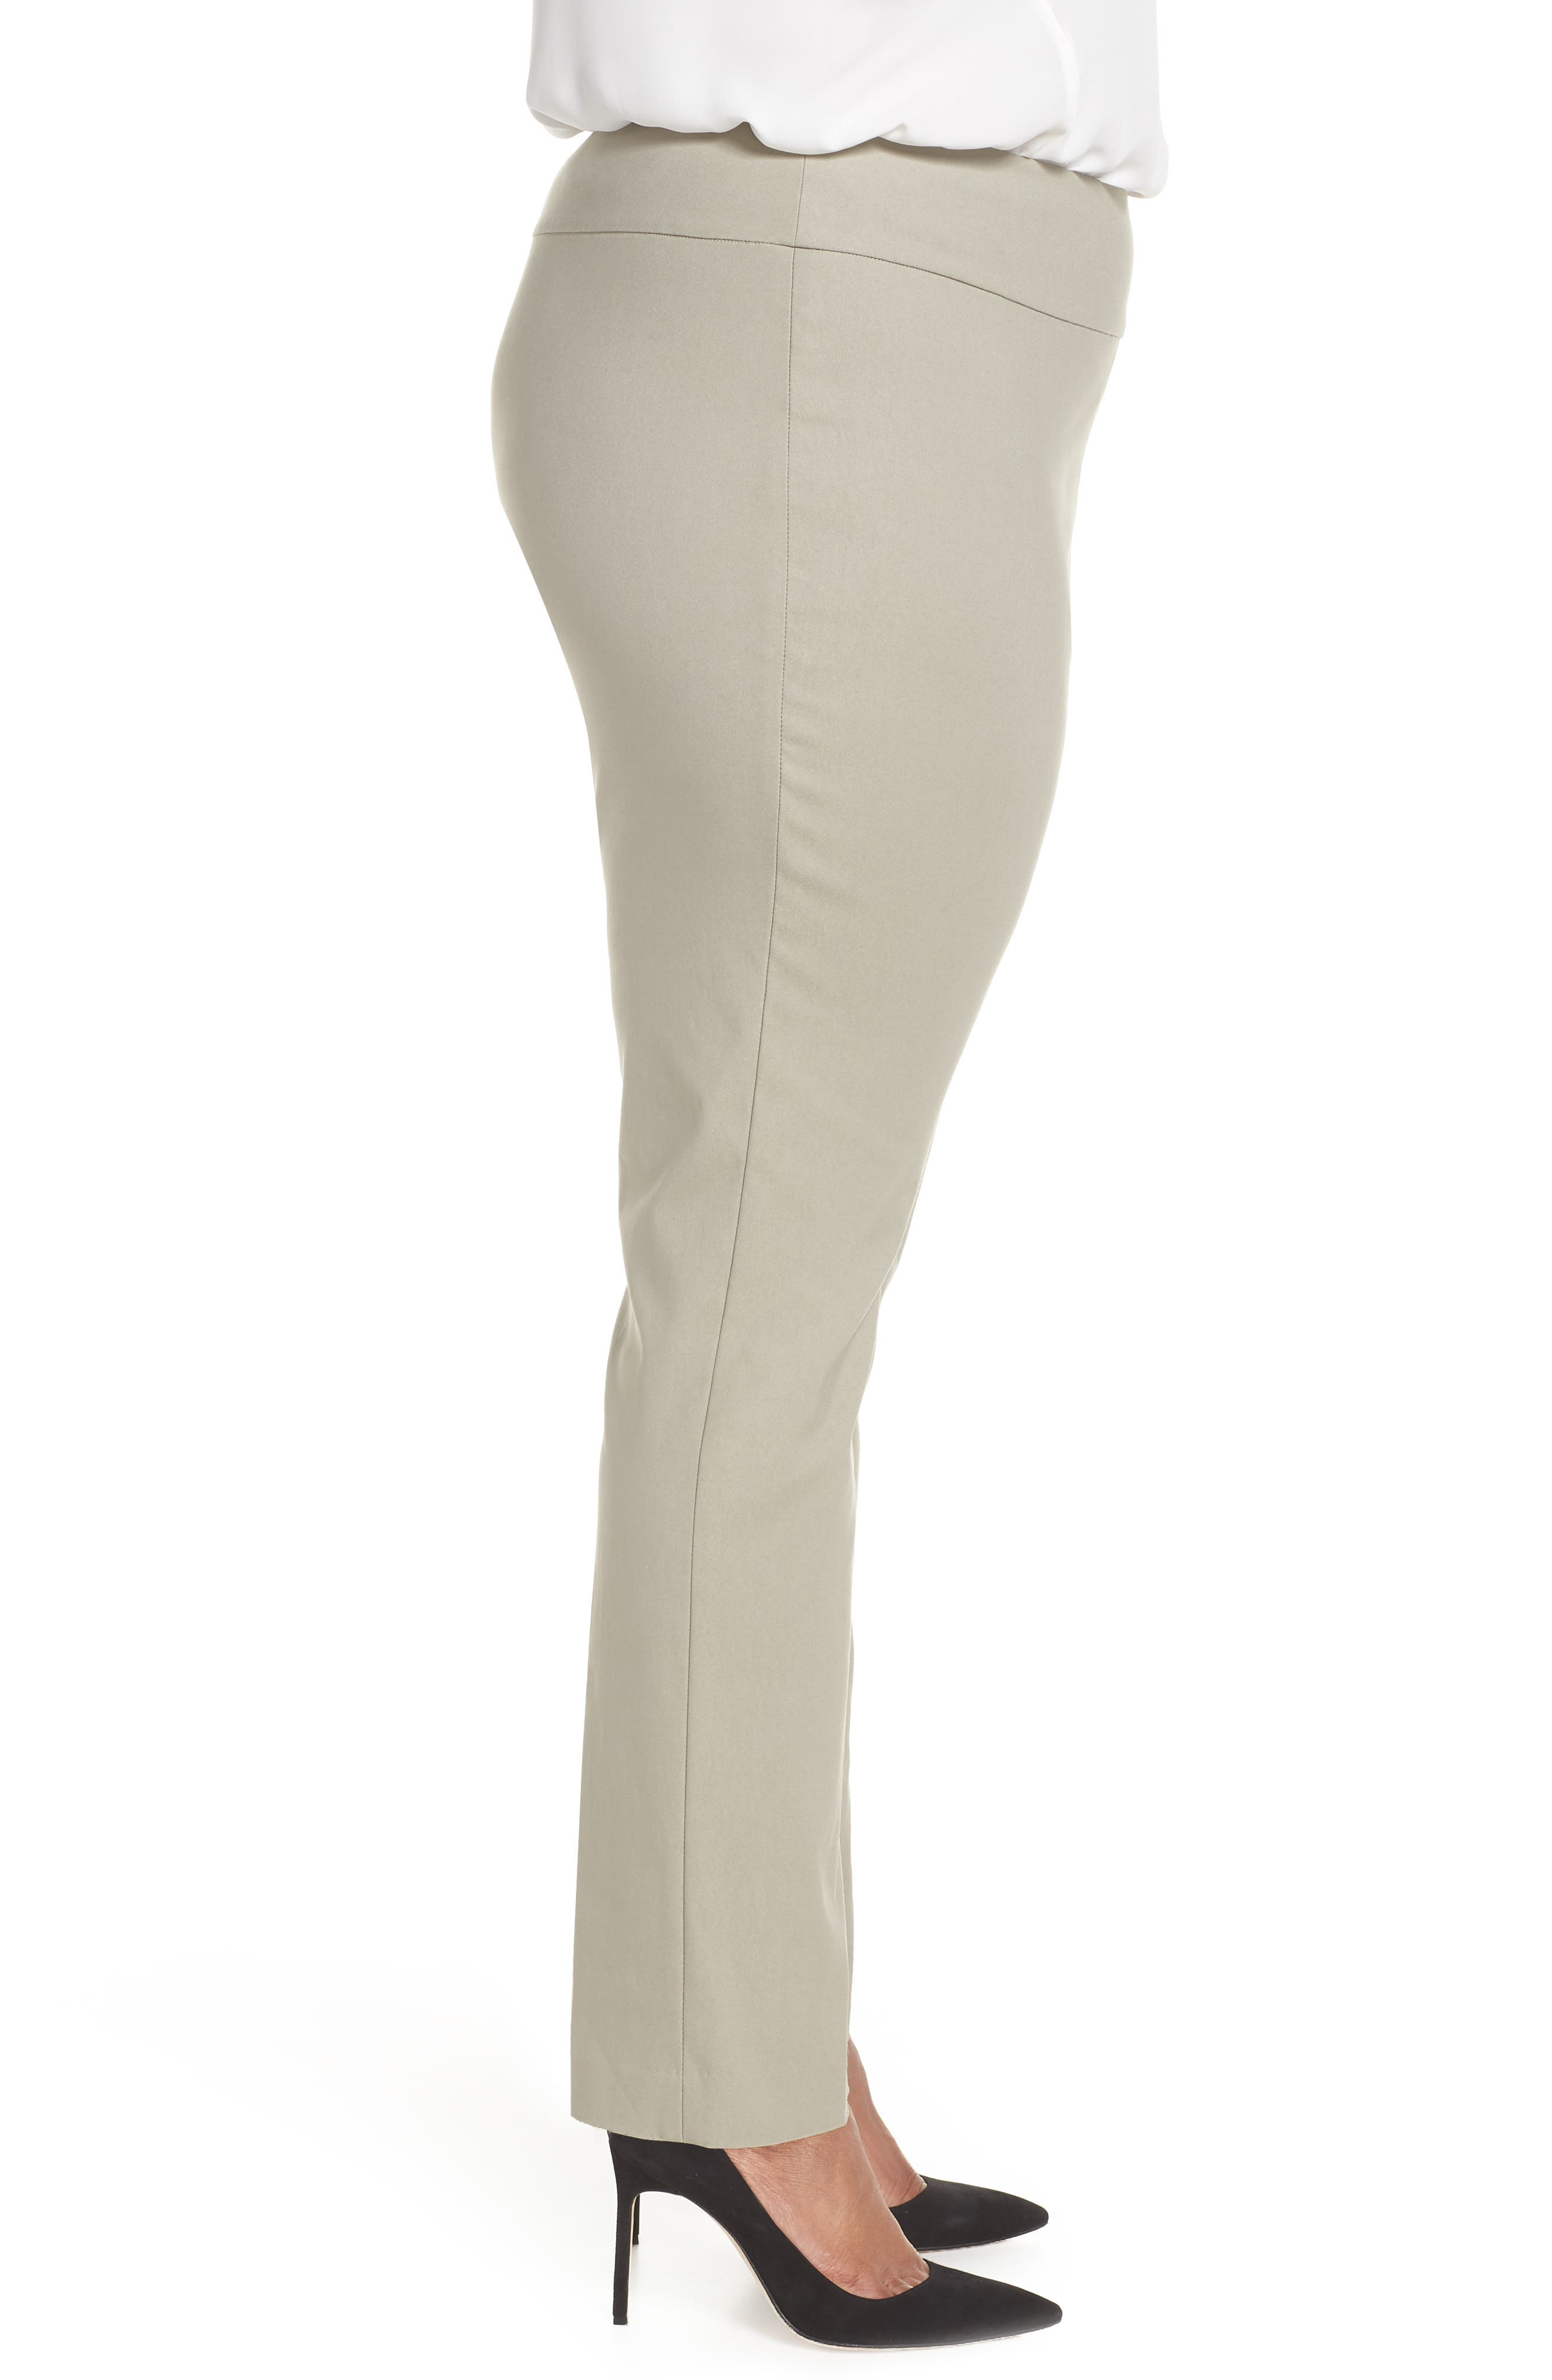 Wonderstretch High Rise Pants,                             Alternate thumbnail 3, color,                             251